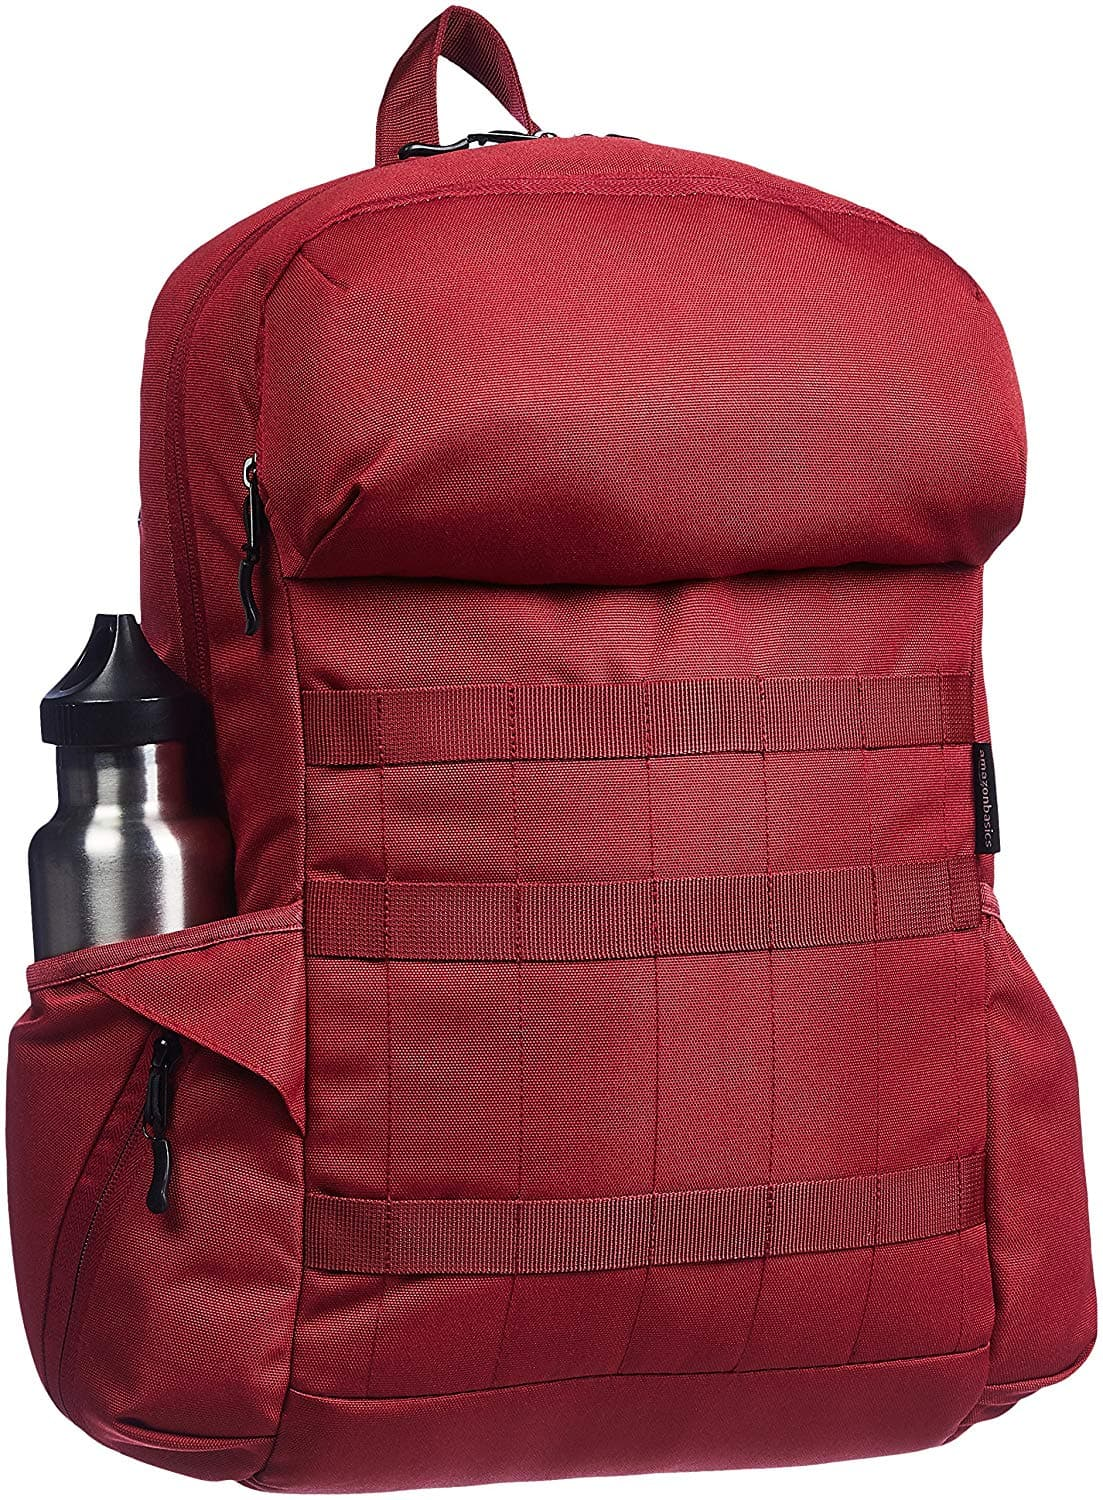 AmazonBasics Canvas Laptop Backpack Bag for up to 15 Inch Laptops - Deep Red $8.75